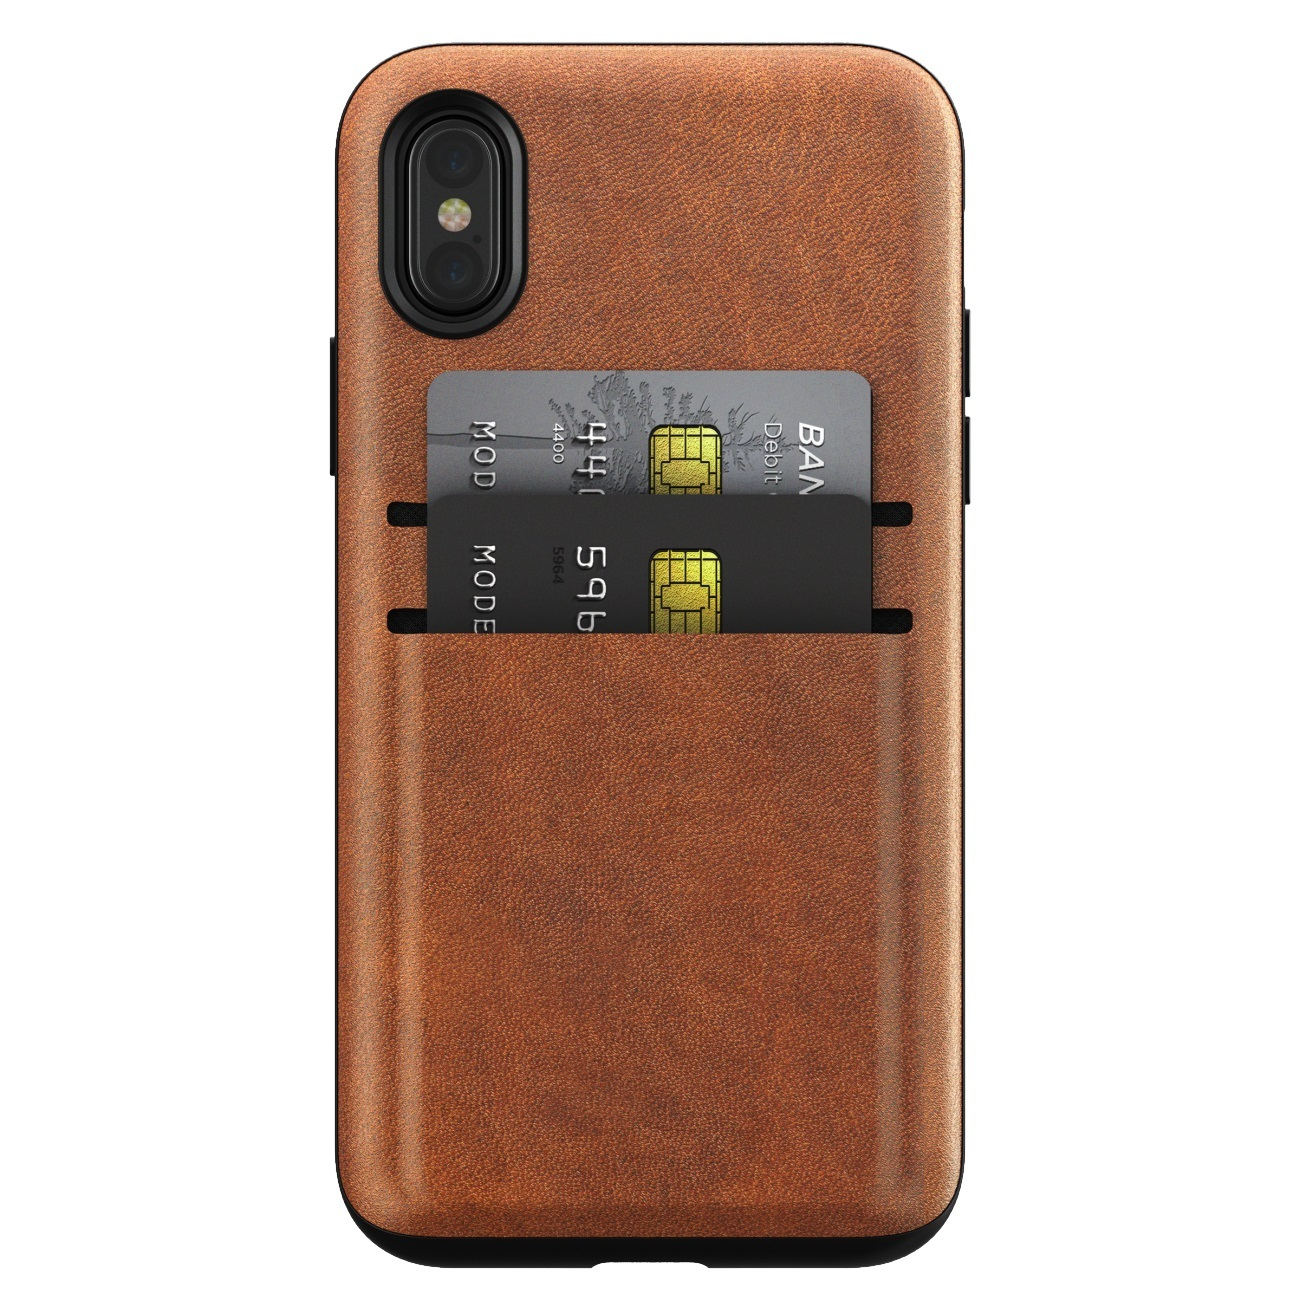 Nomad Leather Wallet Case - iPhone X/XS image